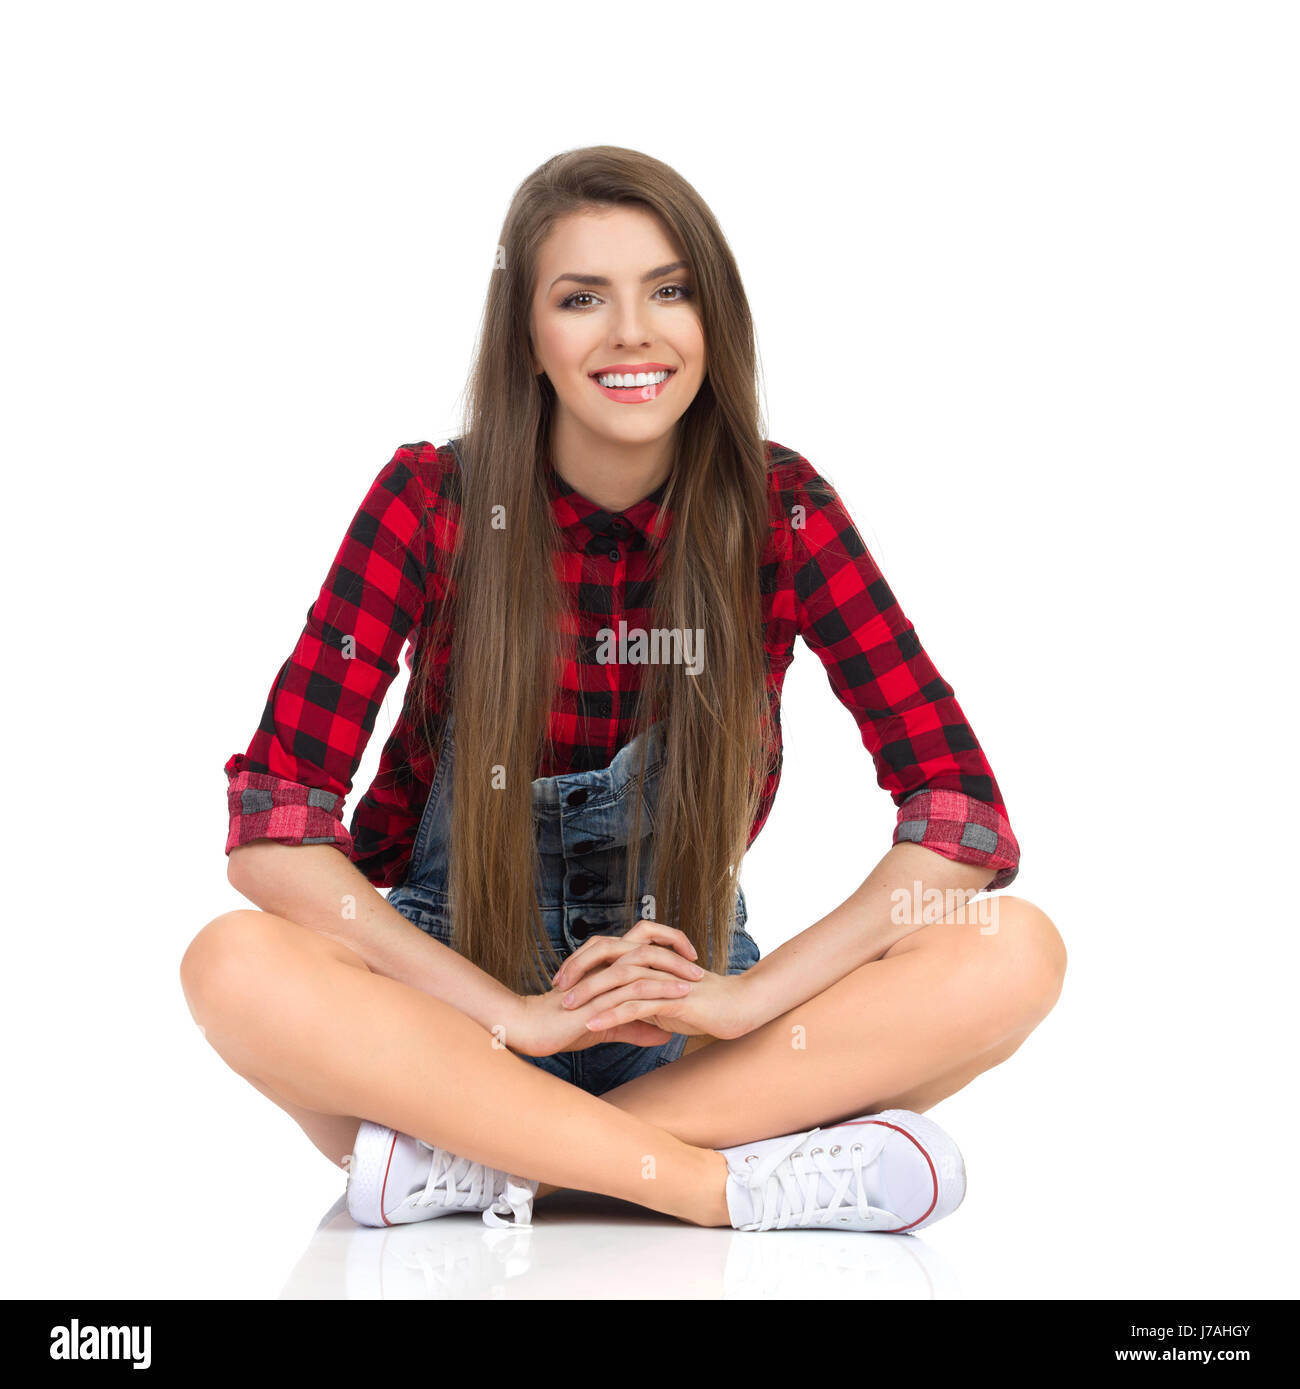 Young smiling woman in red lumberjack shirt, jeans shorts and white sneakers sitting on a floor with legs crossed - Stock Image